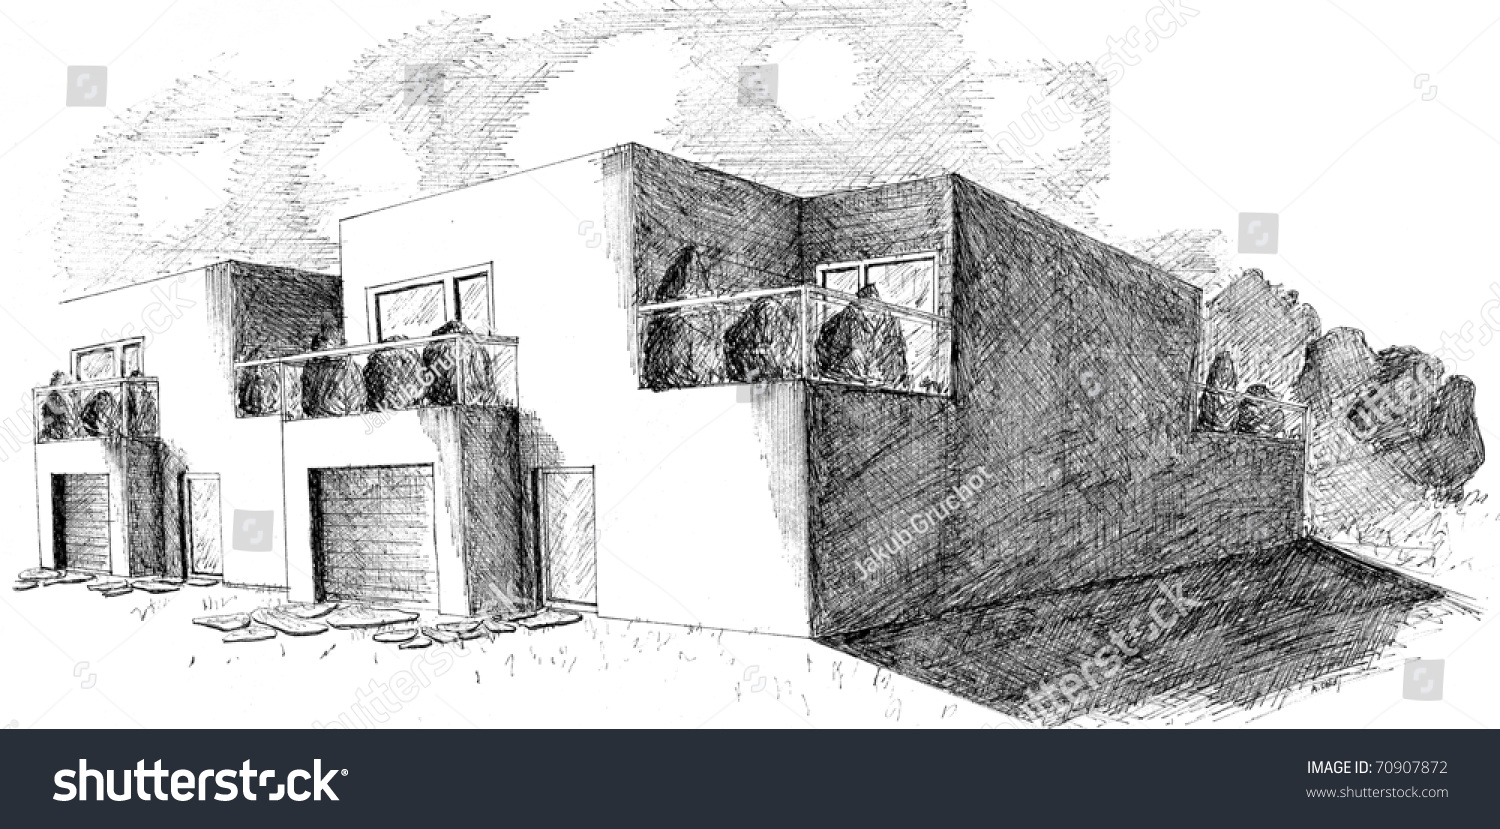 beautiful perspective panorama drawing terraced house stock photo beautiful perspective panorama drawing of terraced house made with black ink isolated on